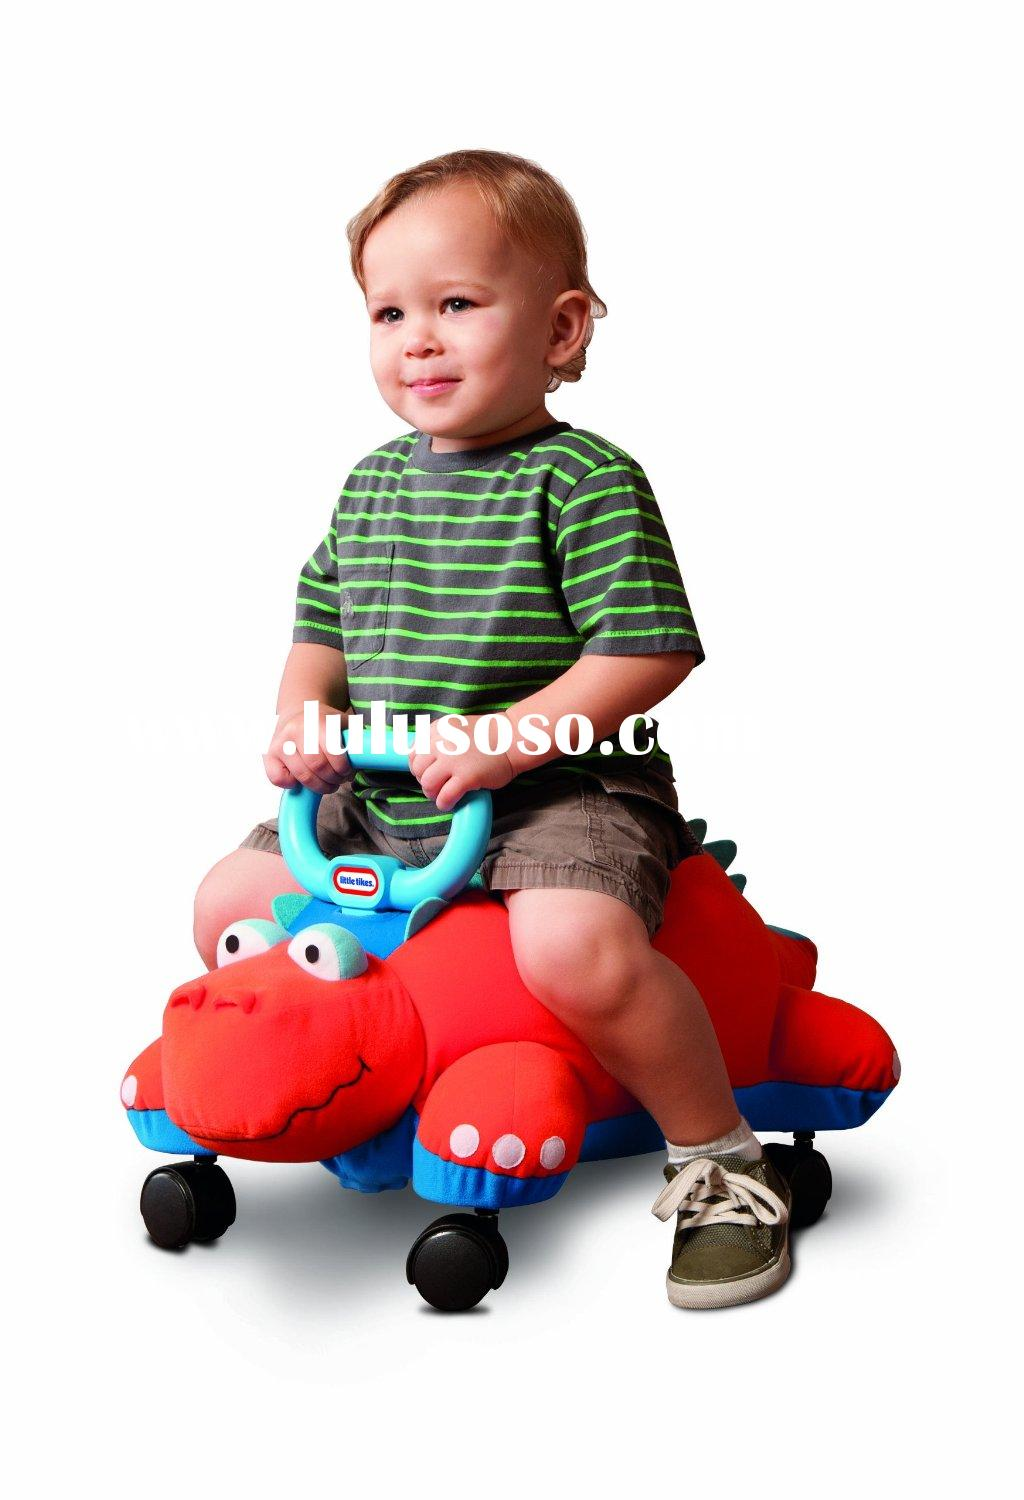 Little Tikes Dino dragon baby Pillow Racers - Little tikes racer for kids